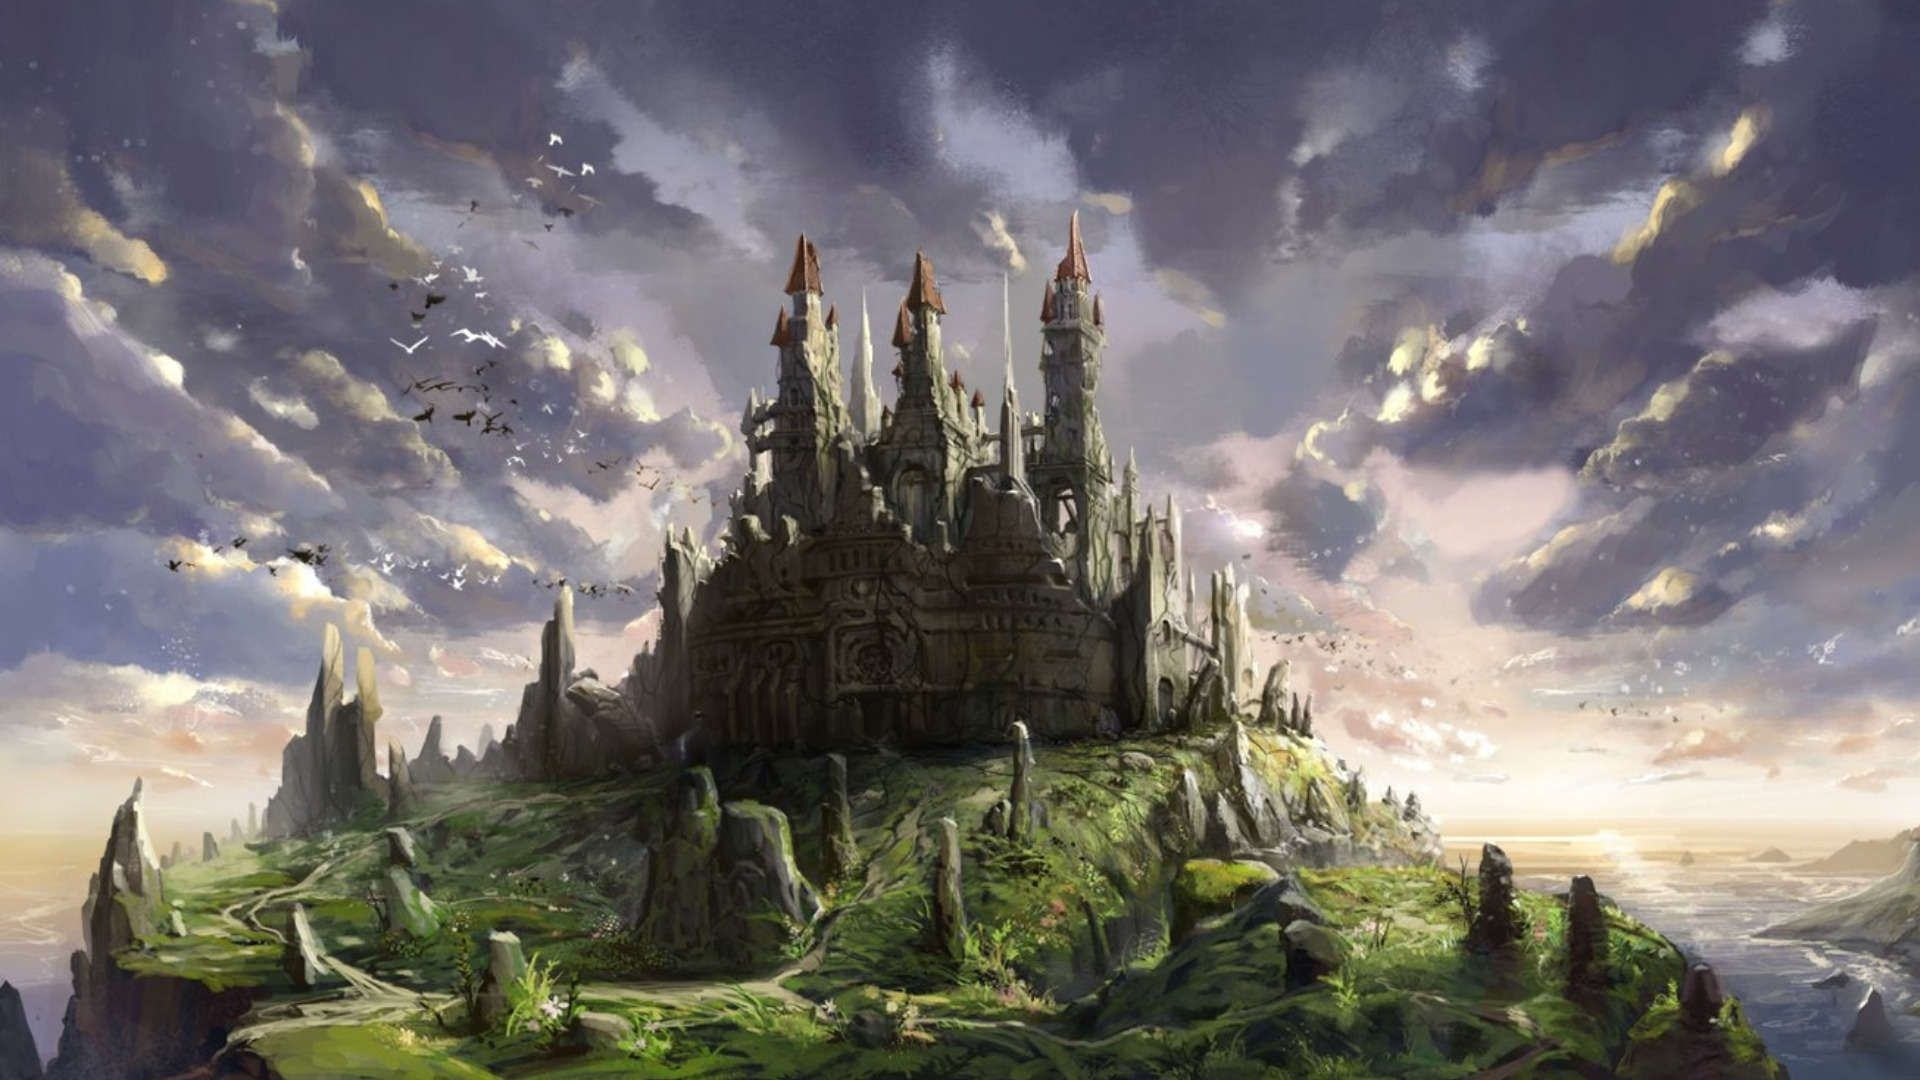 fantasy castle 1080p wallpapers hd resolution wallpaper 1920x1080 px